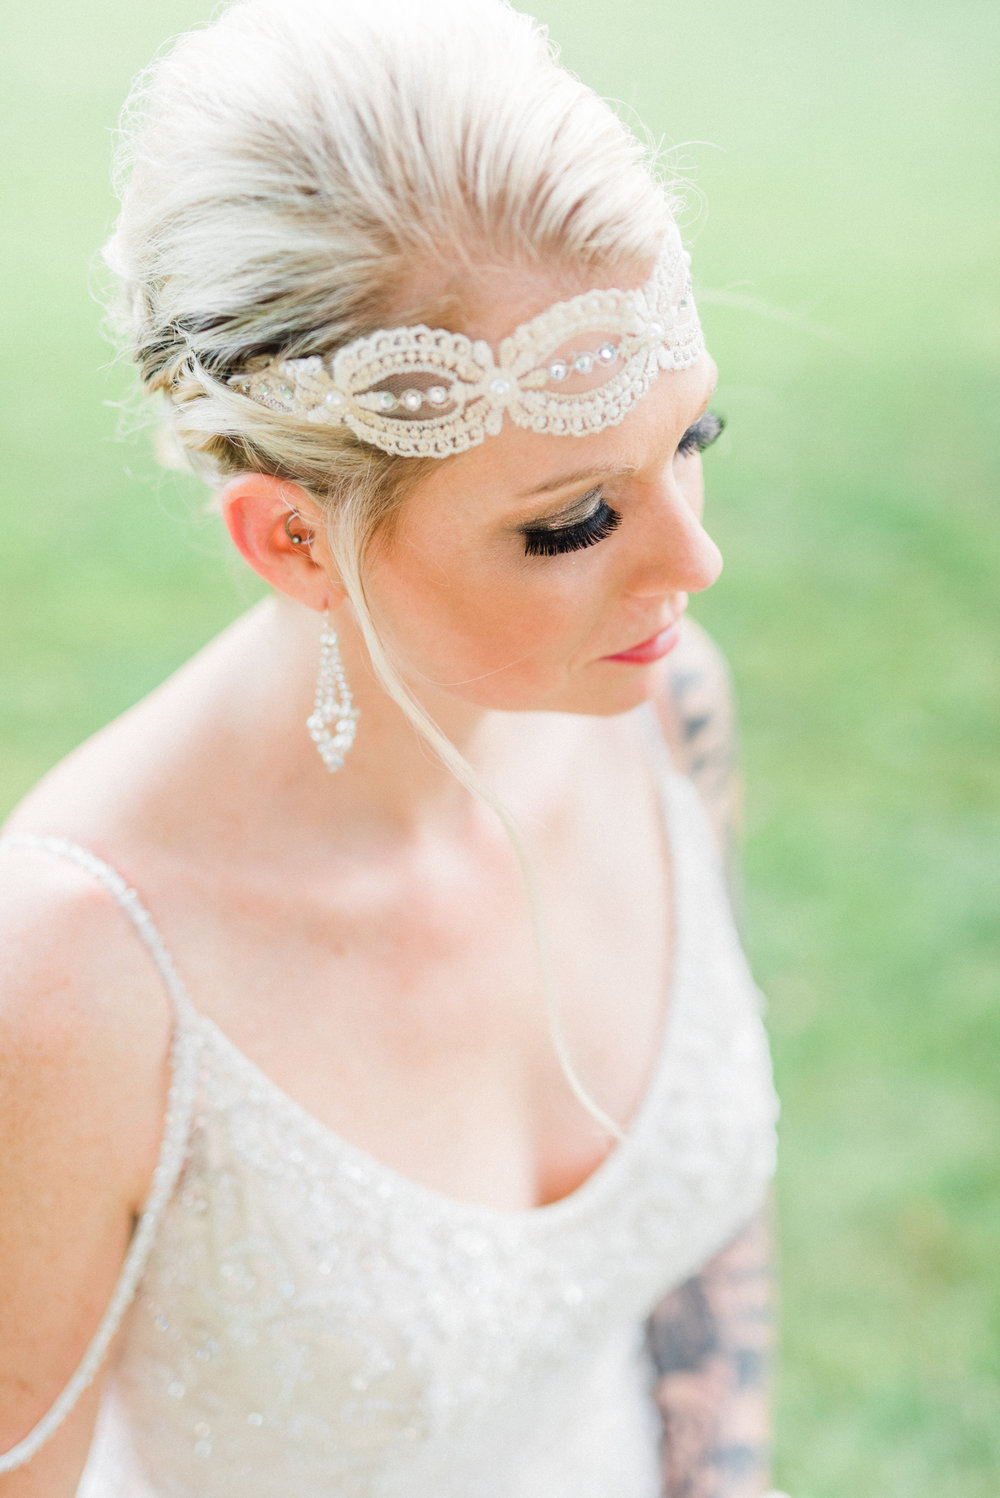 bridal makeup closeup in Reinbeck Iowa. Great Gatsby style headband